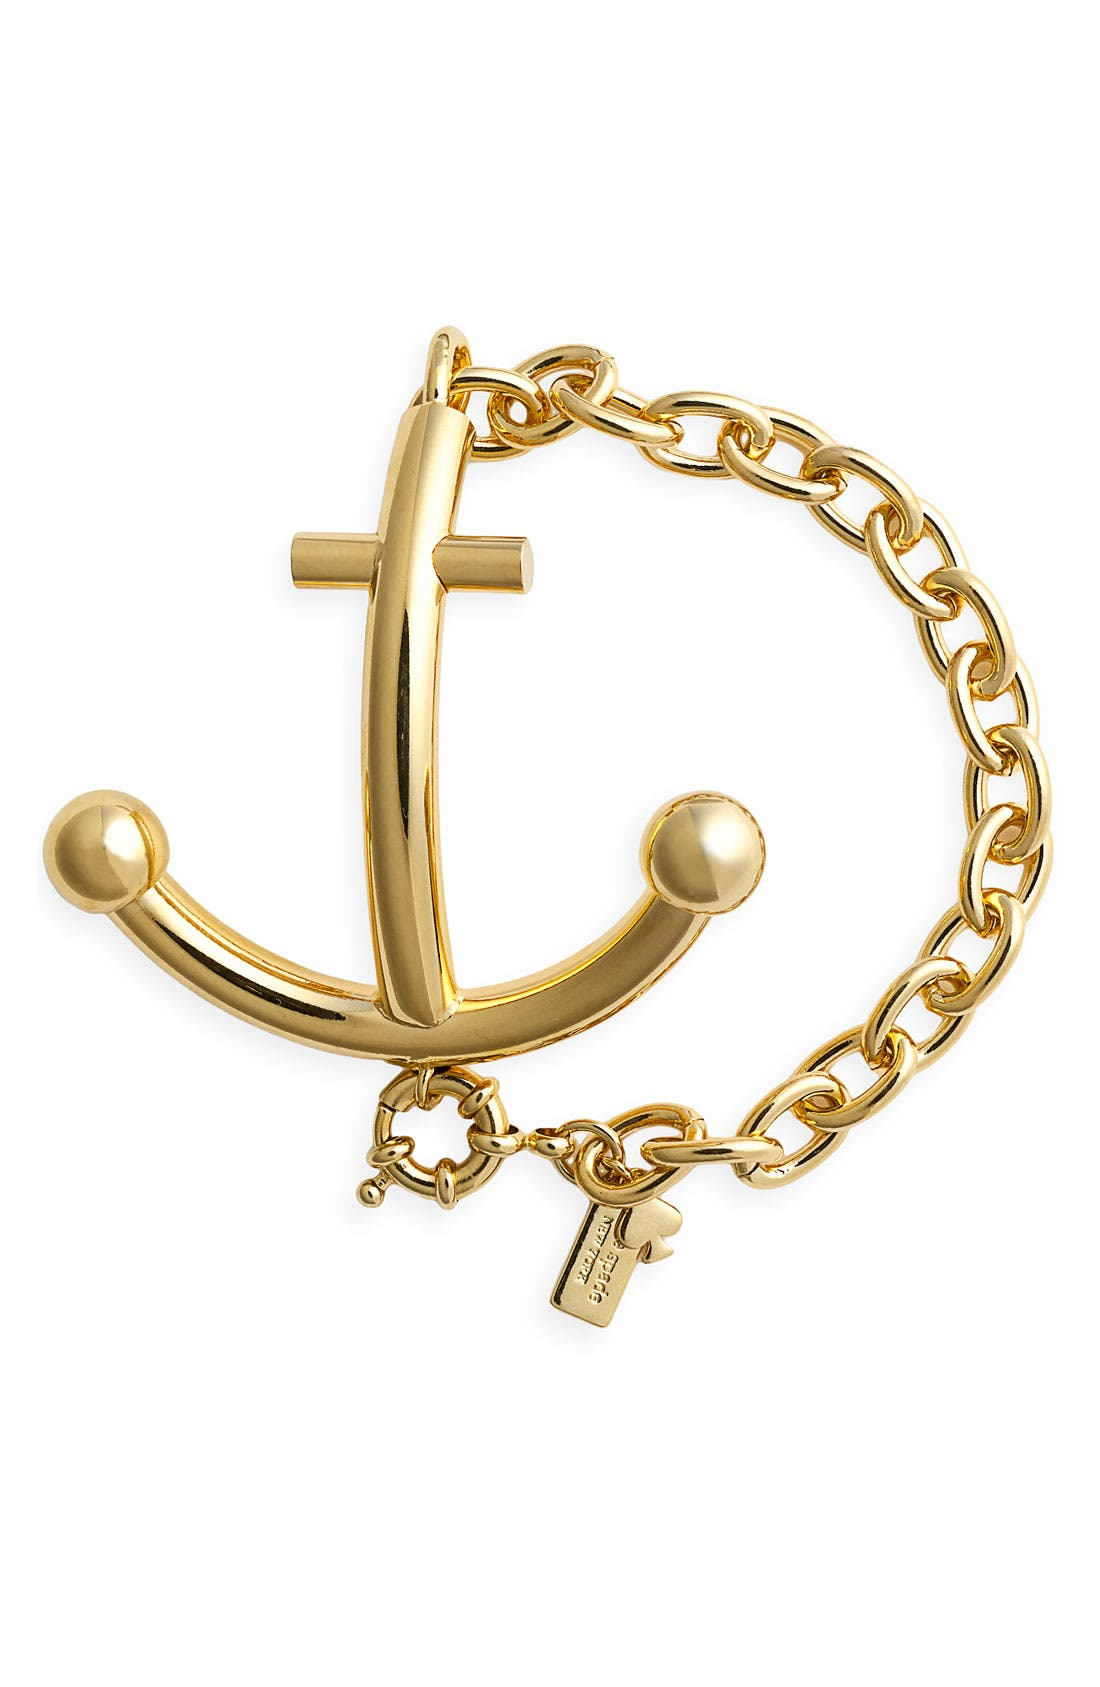 Main Image - kate spade new york 'anchors away' bracelet